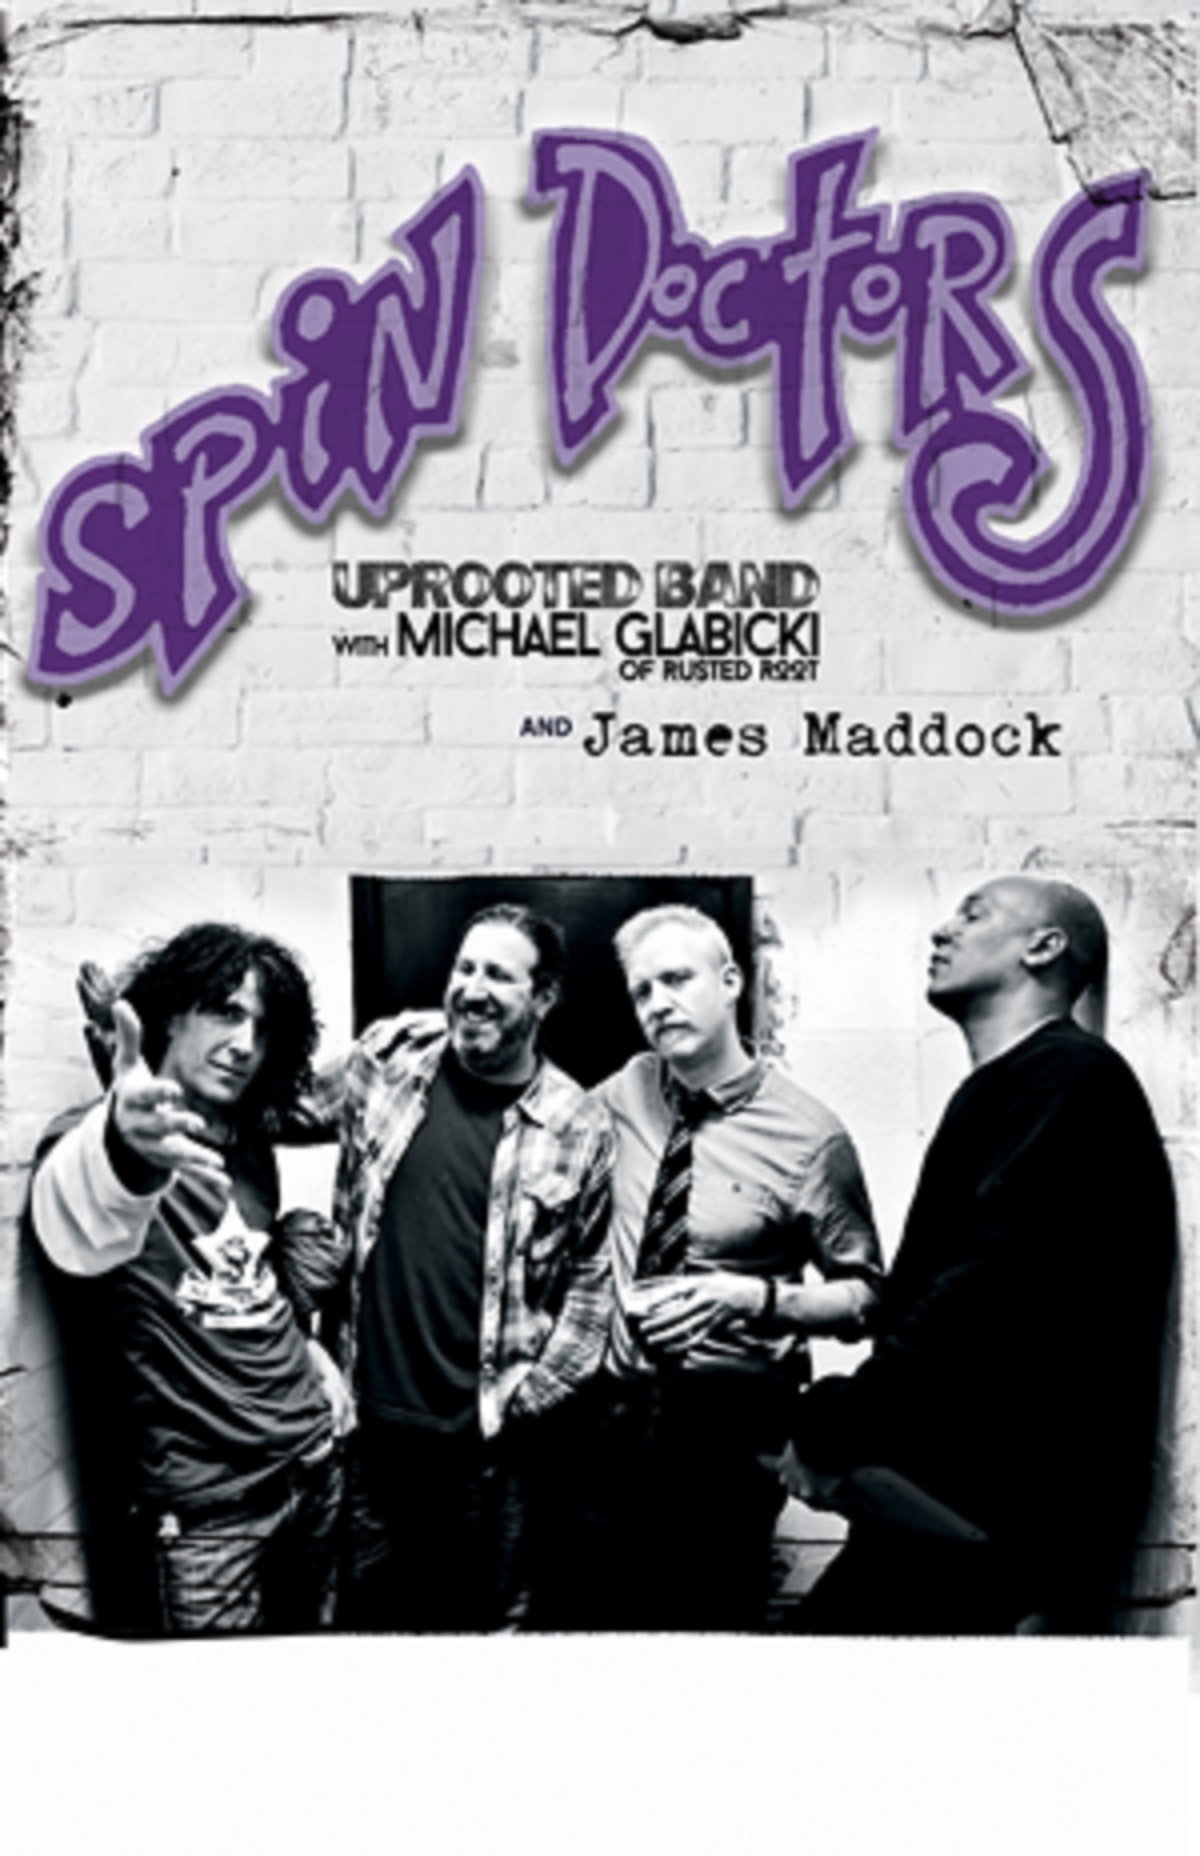 Spin Doctors, Take the Stage at the Wellmont Theater, Jan. 24